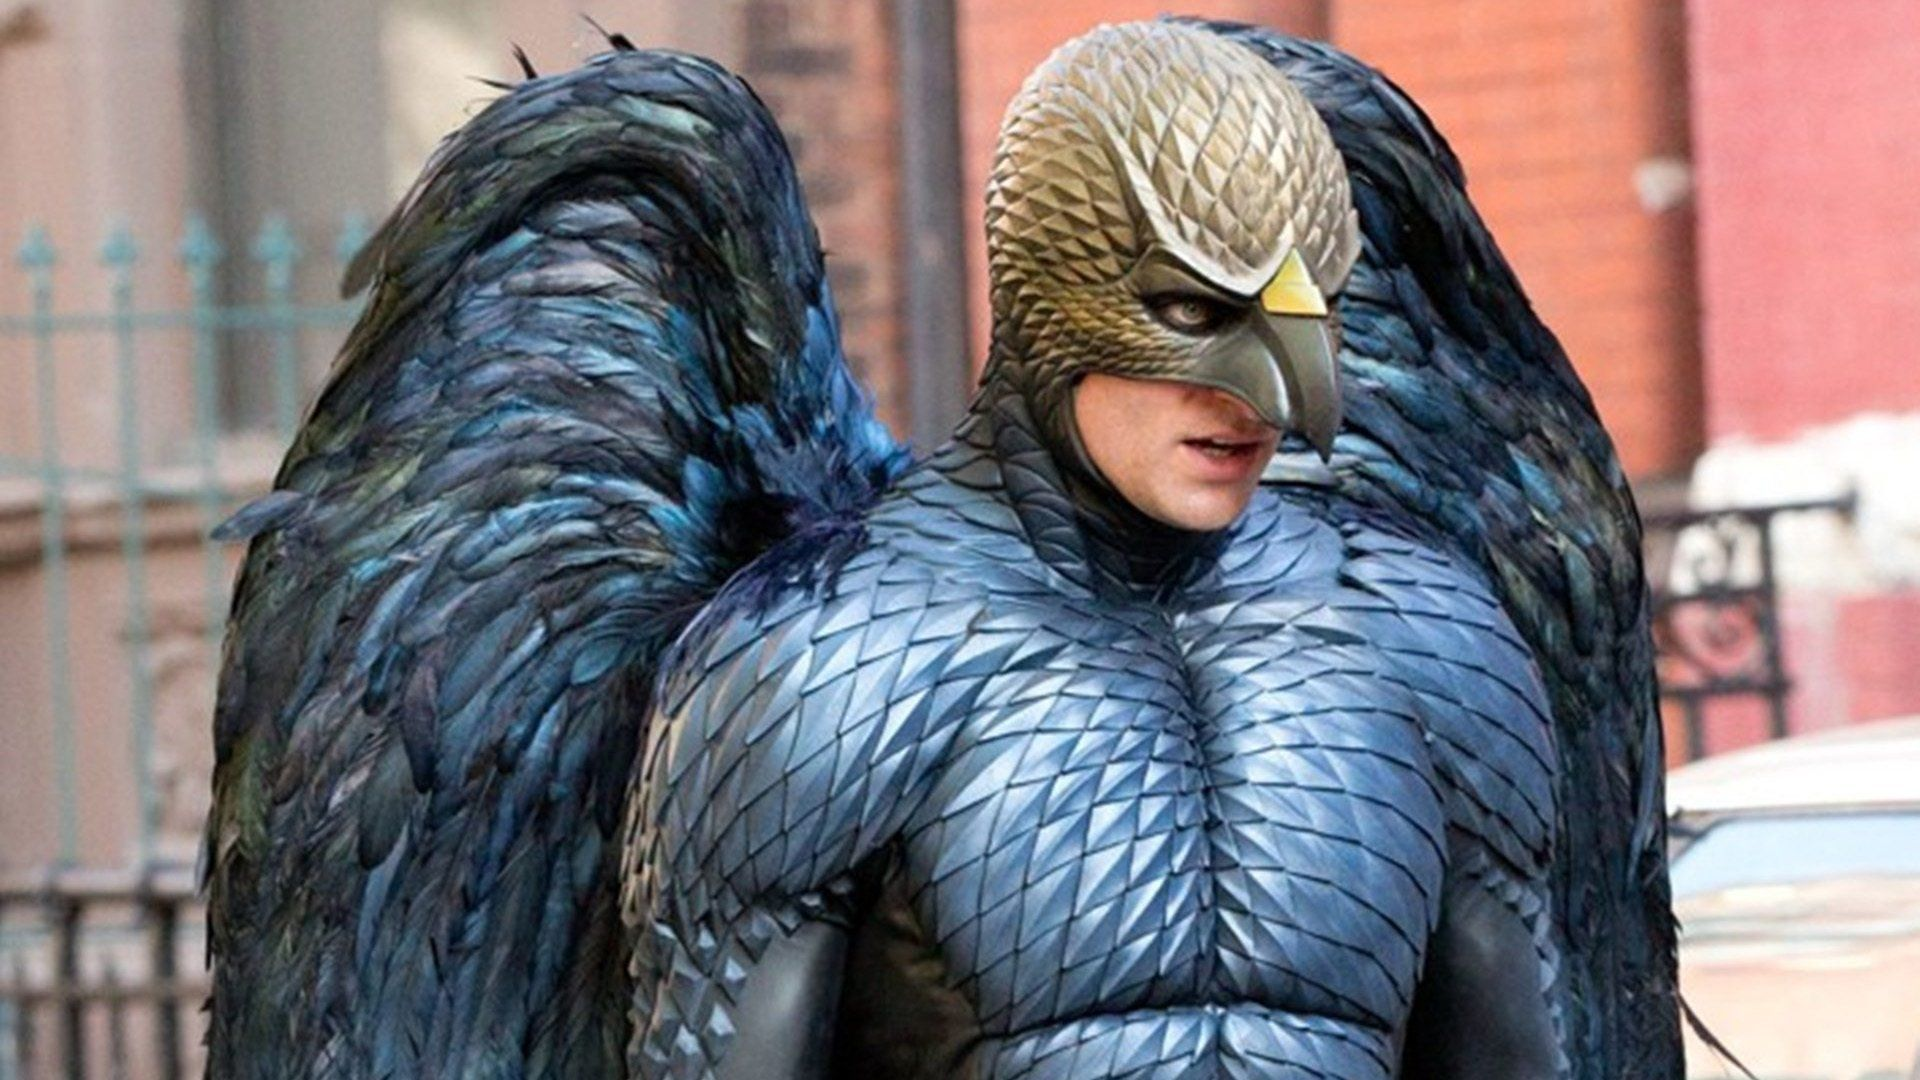 1920x1080 Birdman Wallpapers HD Download